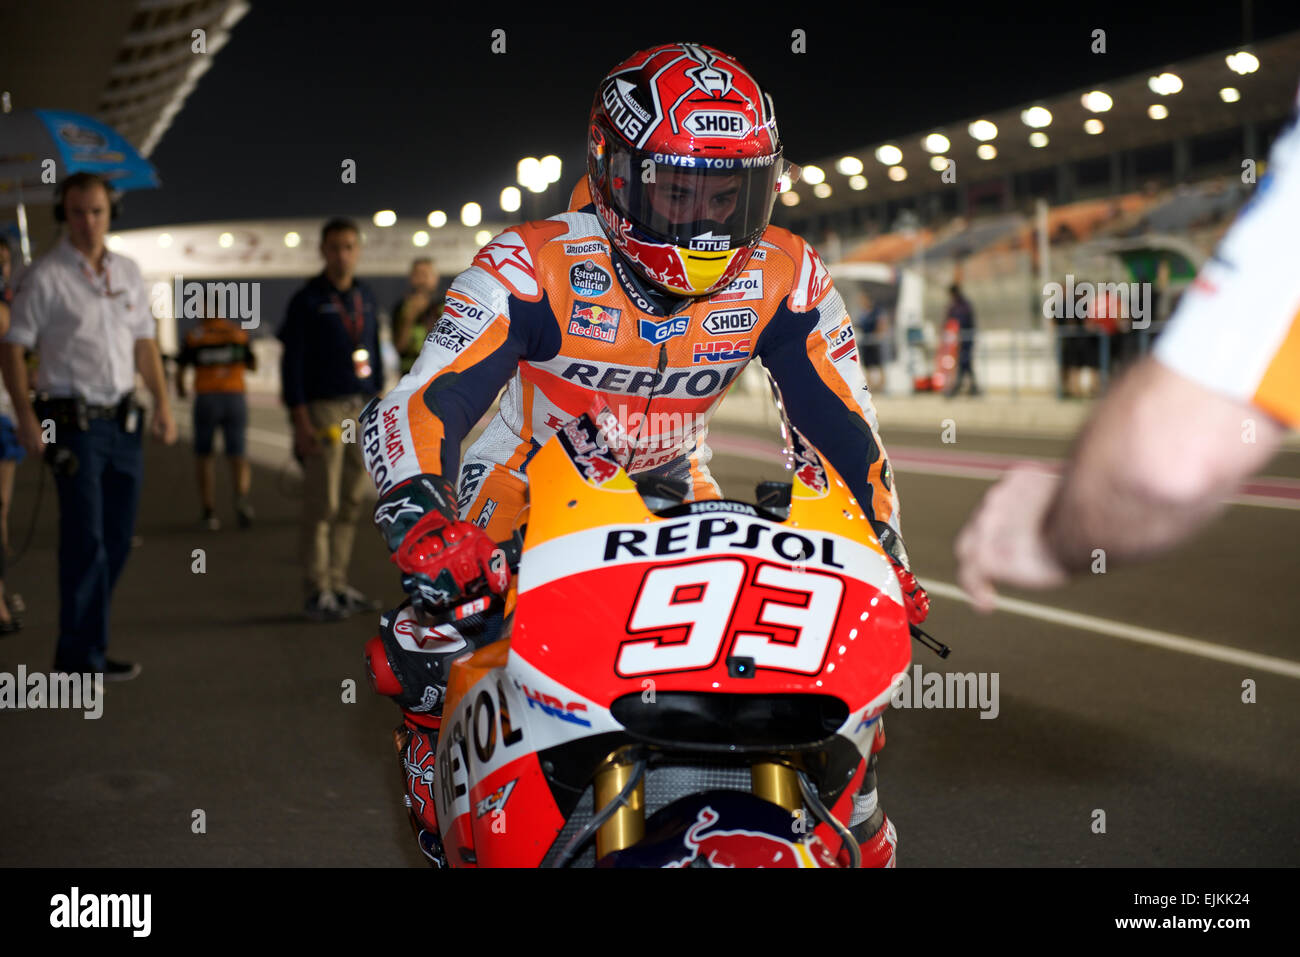 Honda Branding Stock Photos Images Alamy Camel Pit Bike Losail Circuit Qatar 28th March 2015 Repsol Rider Marc Marquez Returns To The